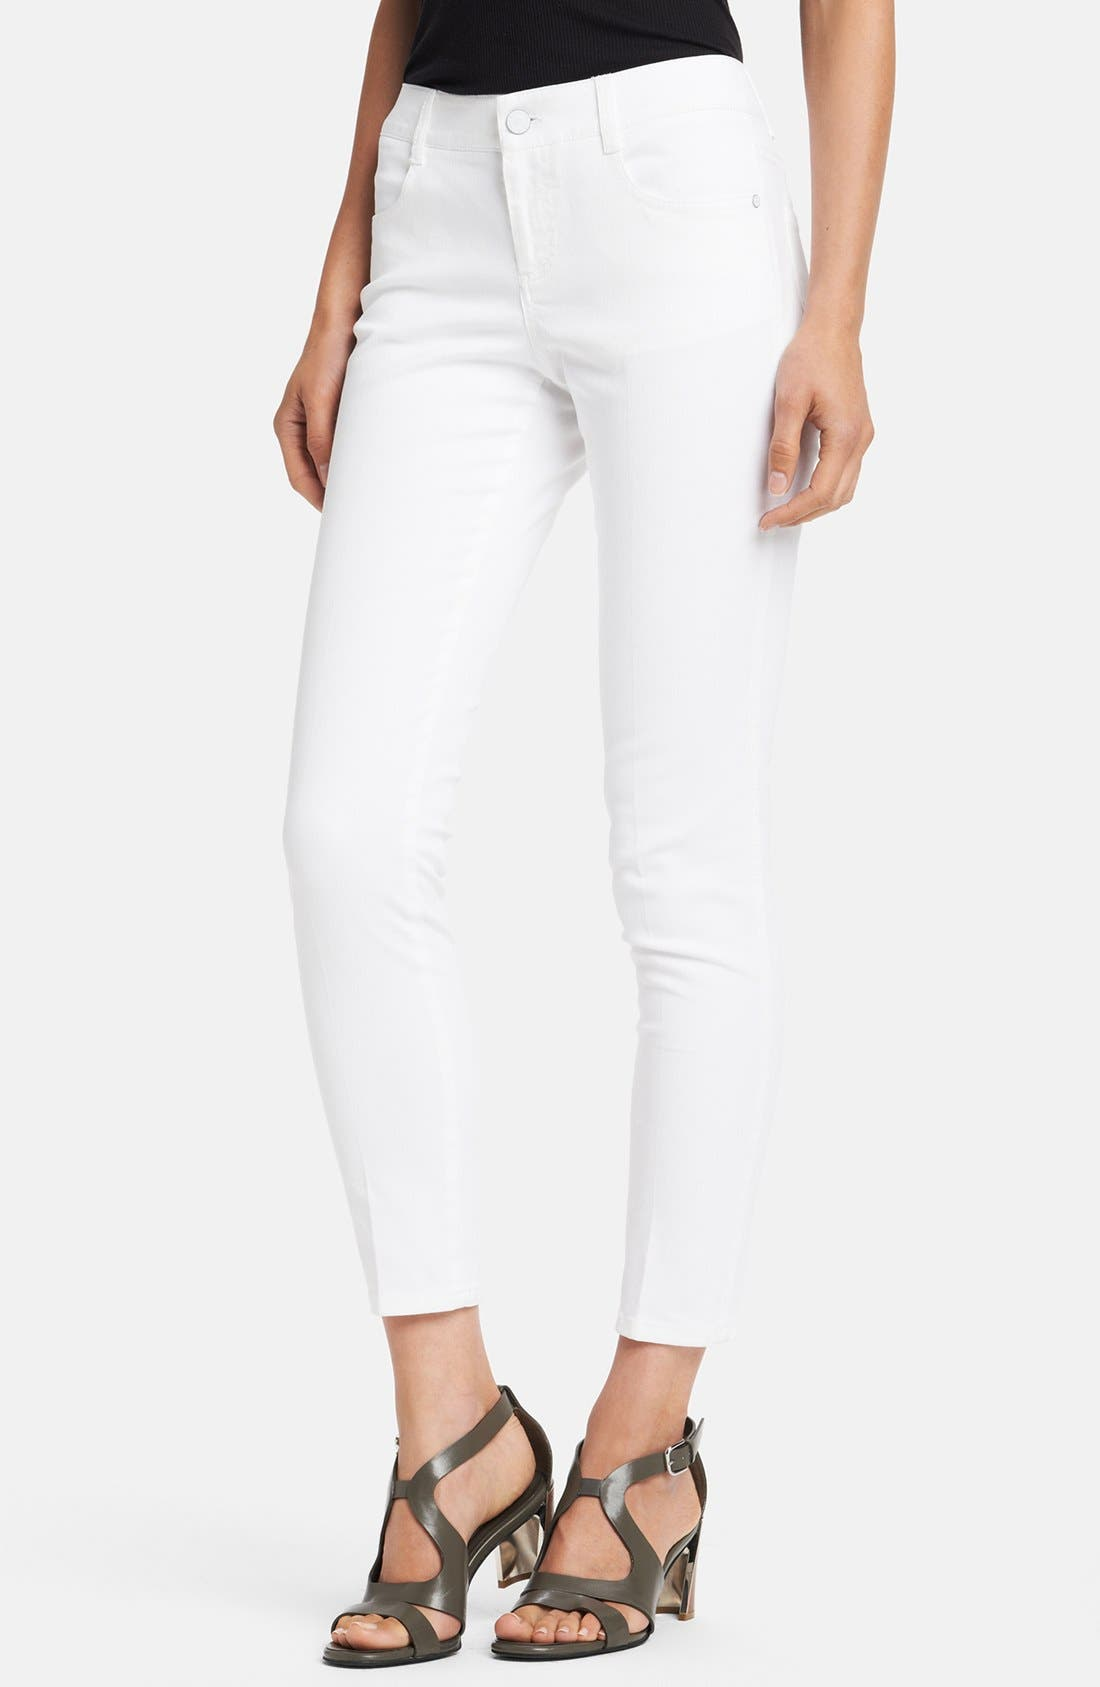 Alternate Image 1 Selected - Stella McCartney 'Simone' Skinny Ankle Grazer Jeans